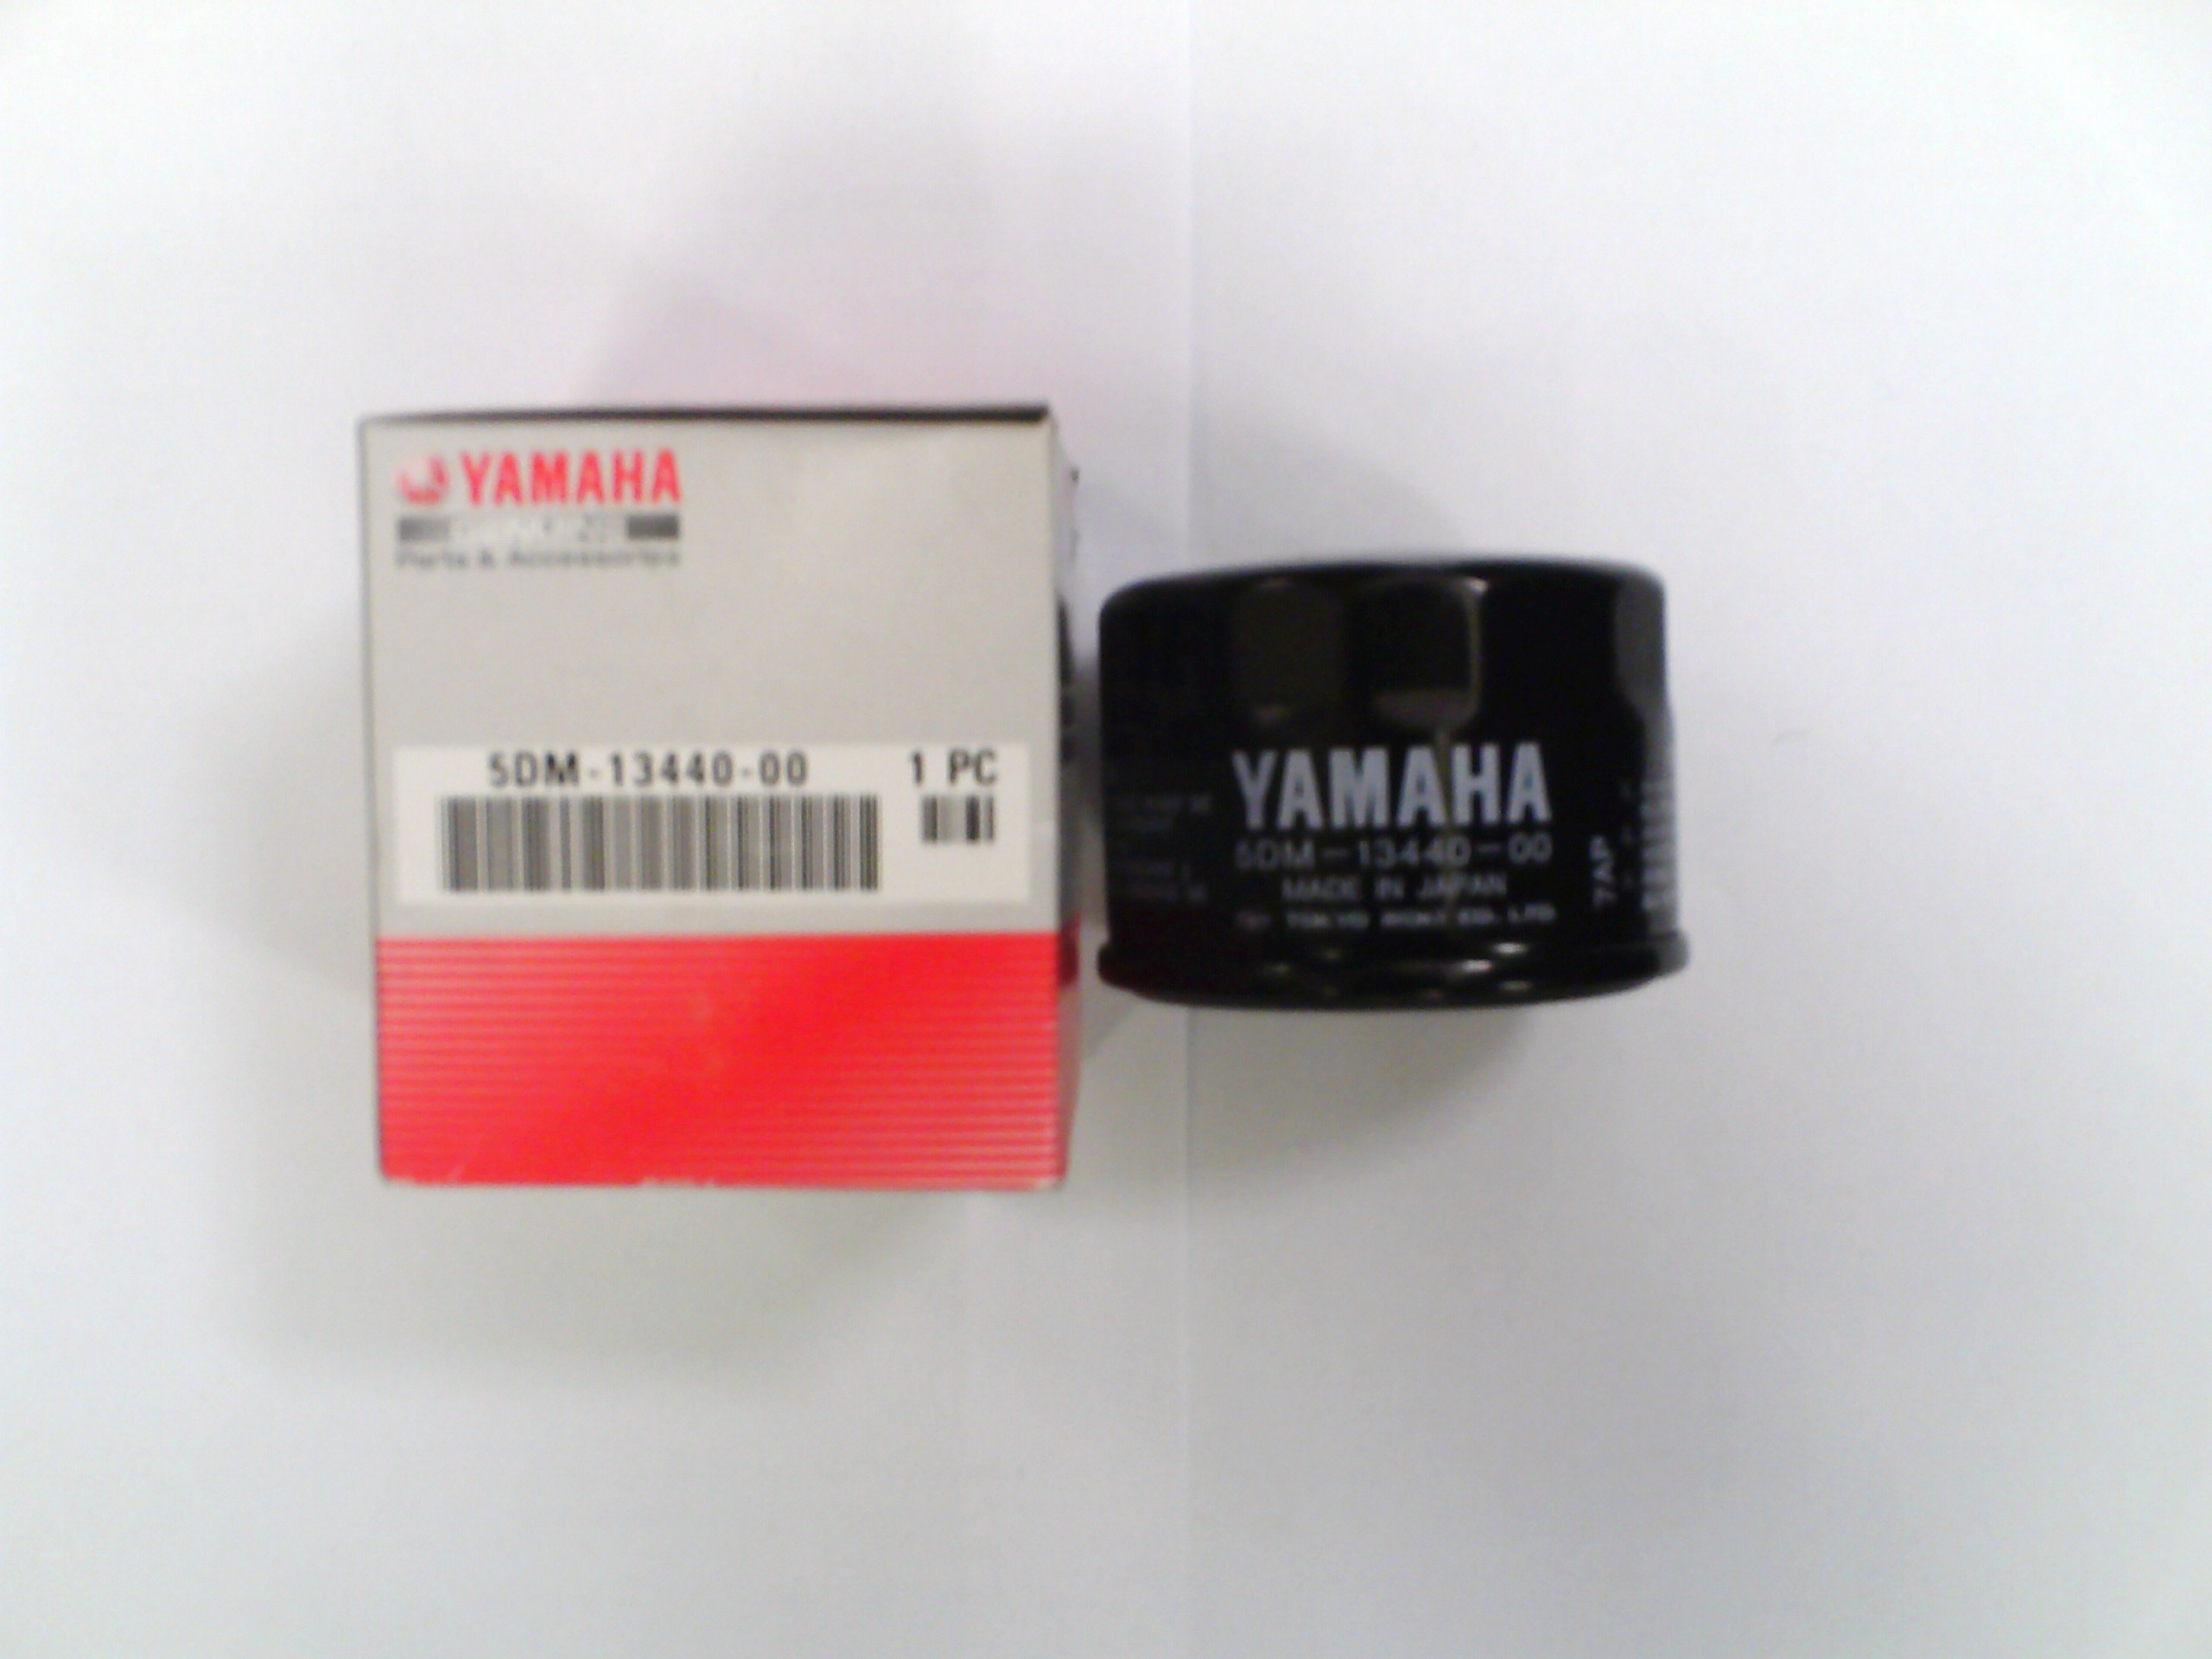 Yamaha Ebay Motorcycle Review And Galleries